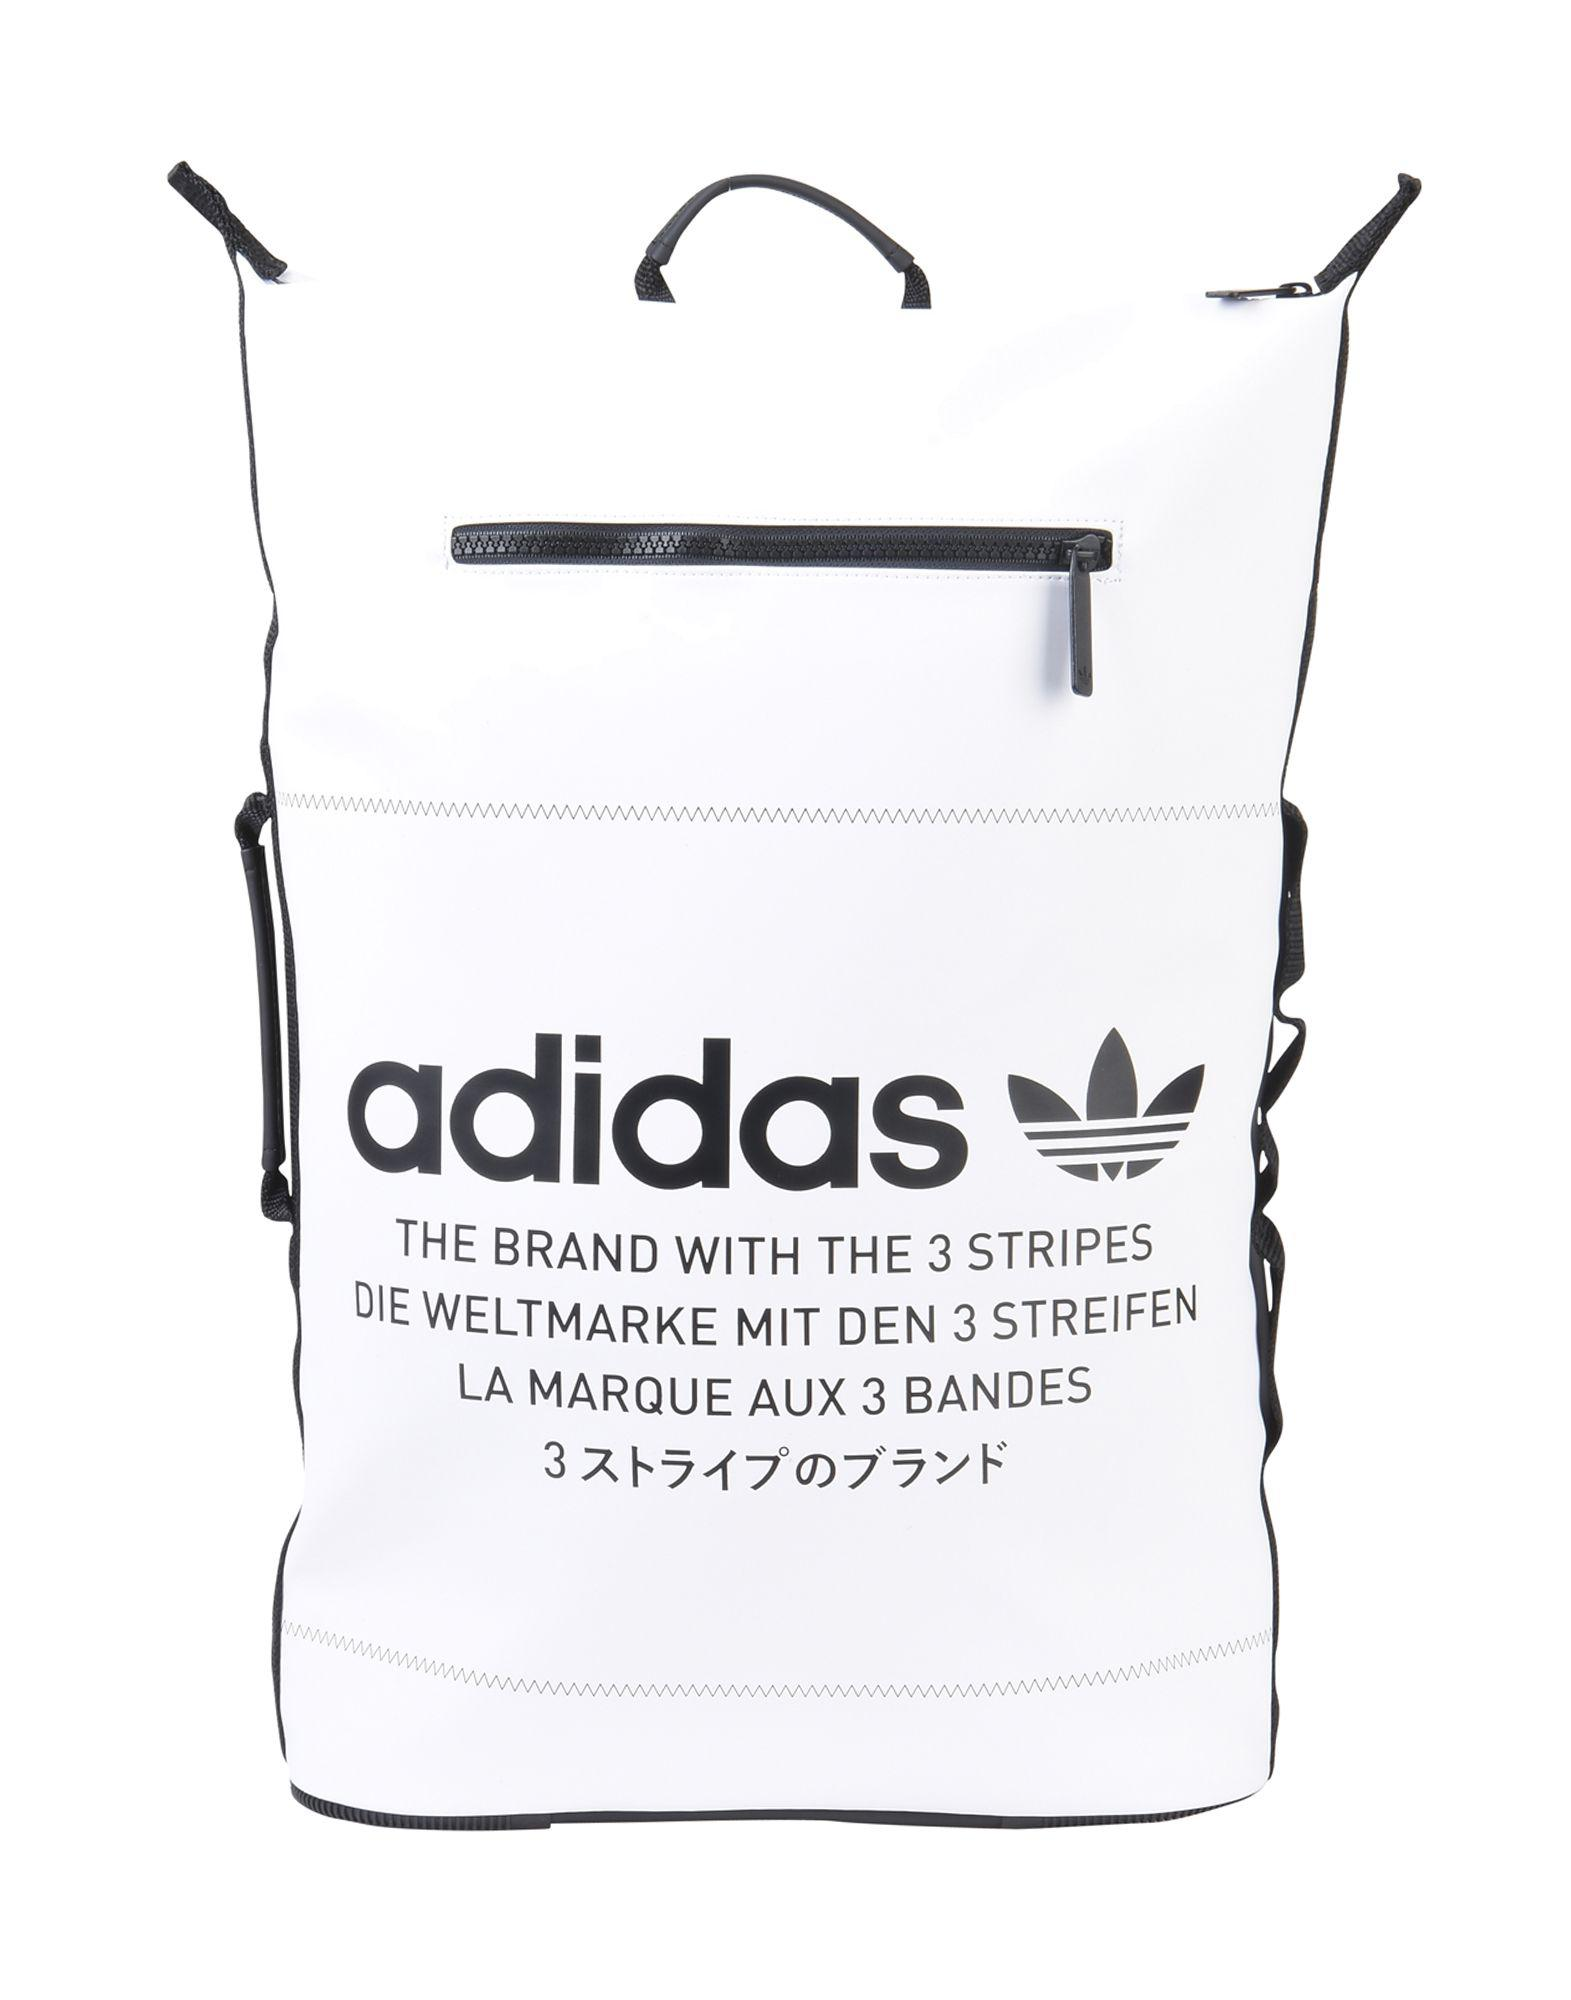 6a4359fcc7 adidas Originals Backpacks   Bum Bags in White - Lyst